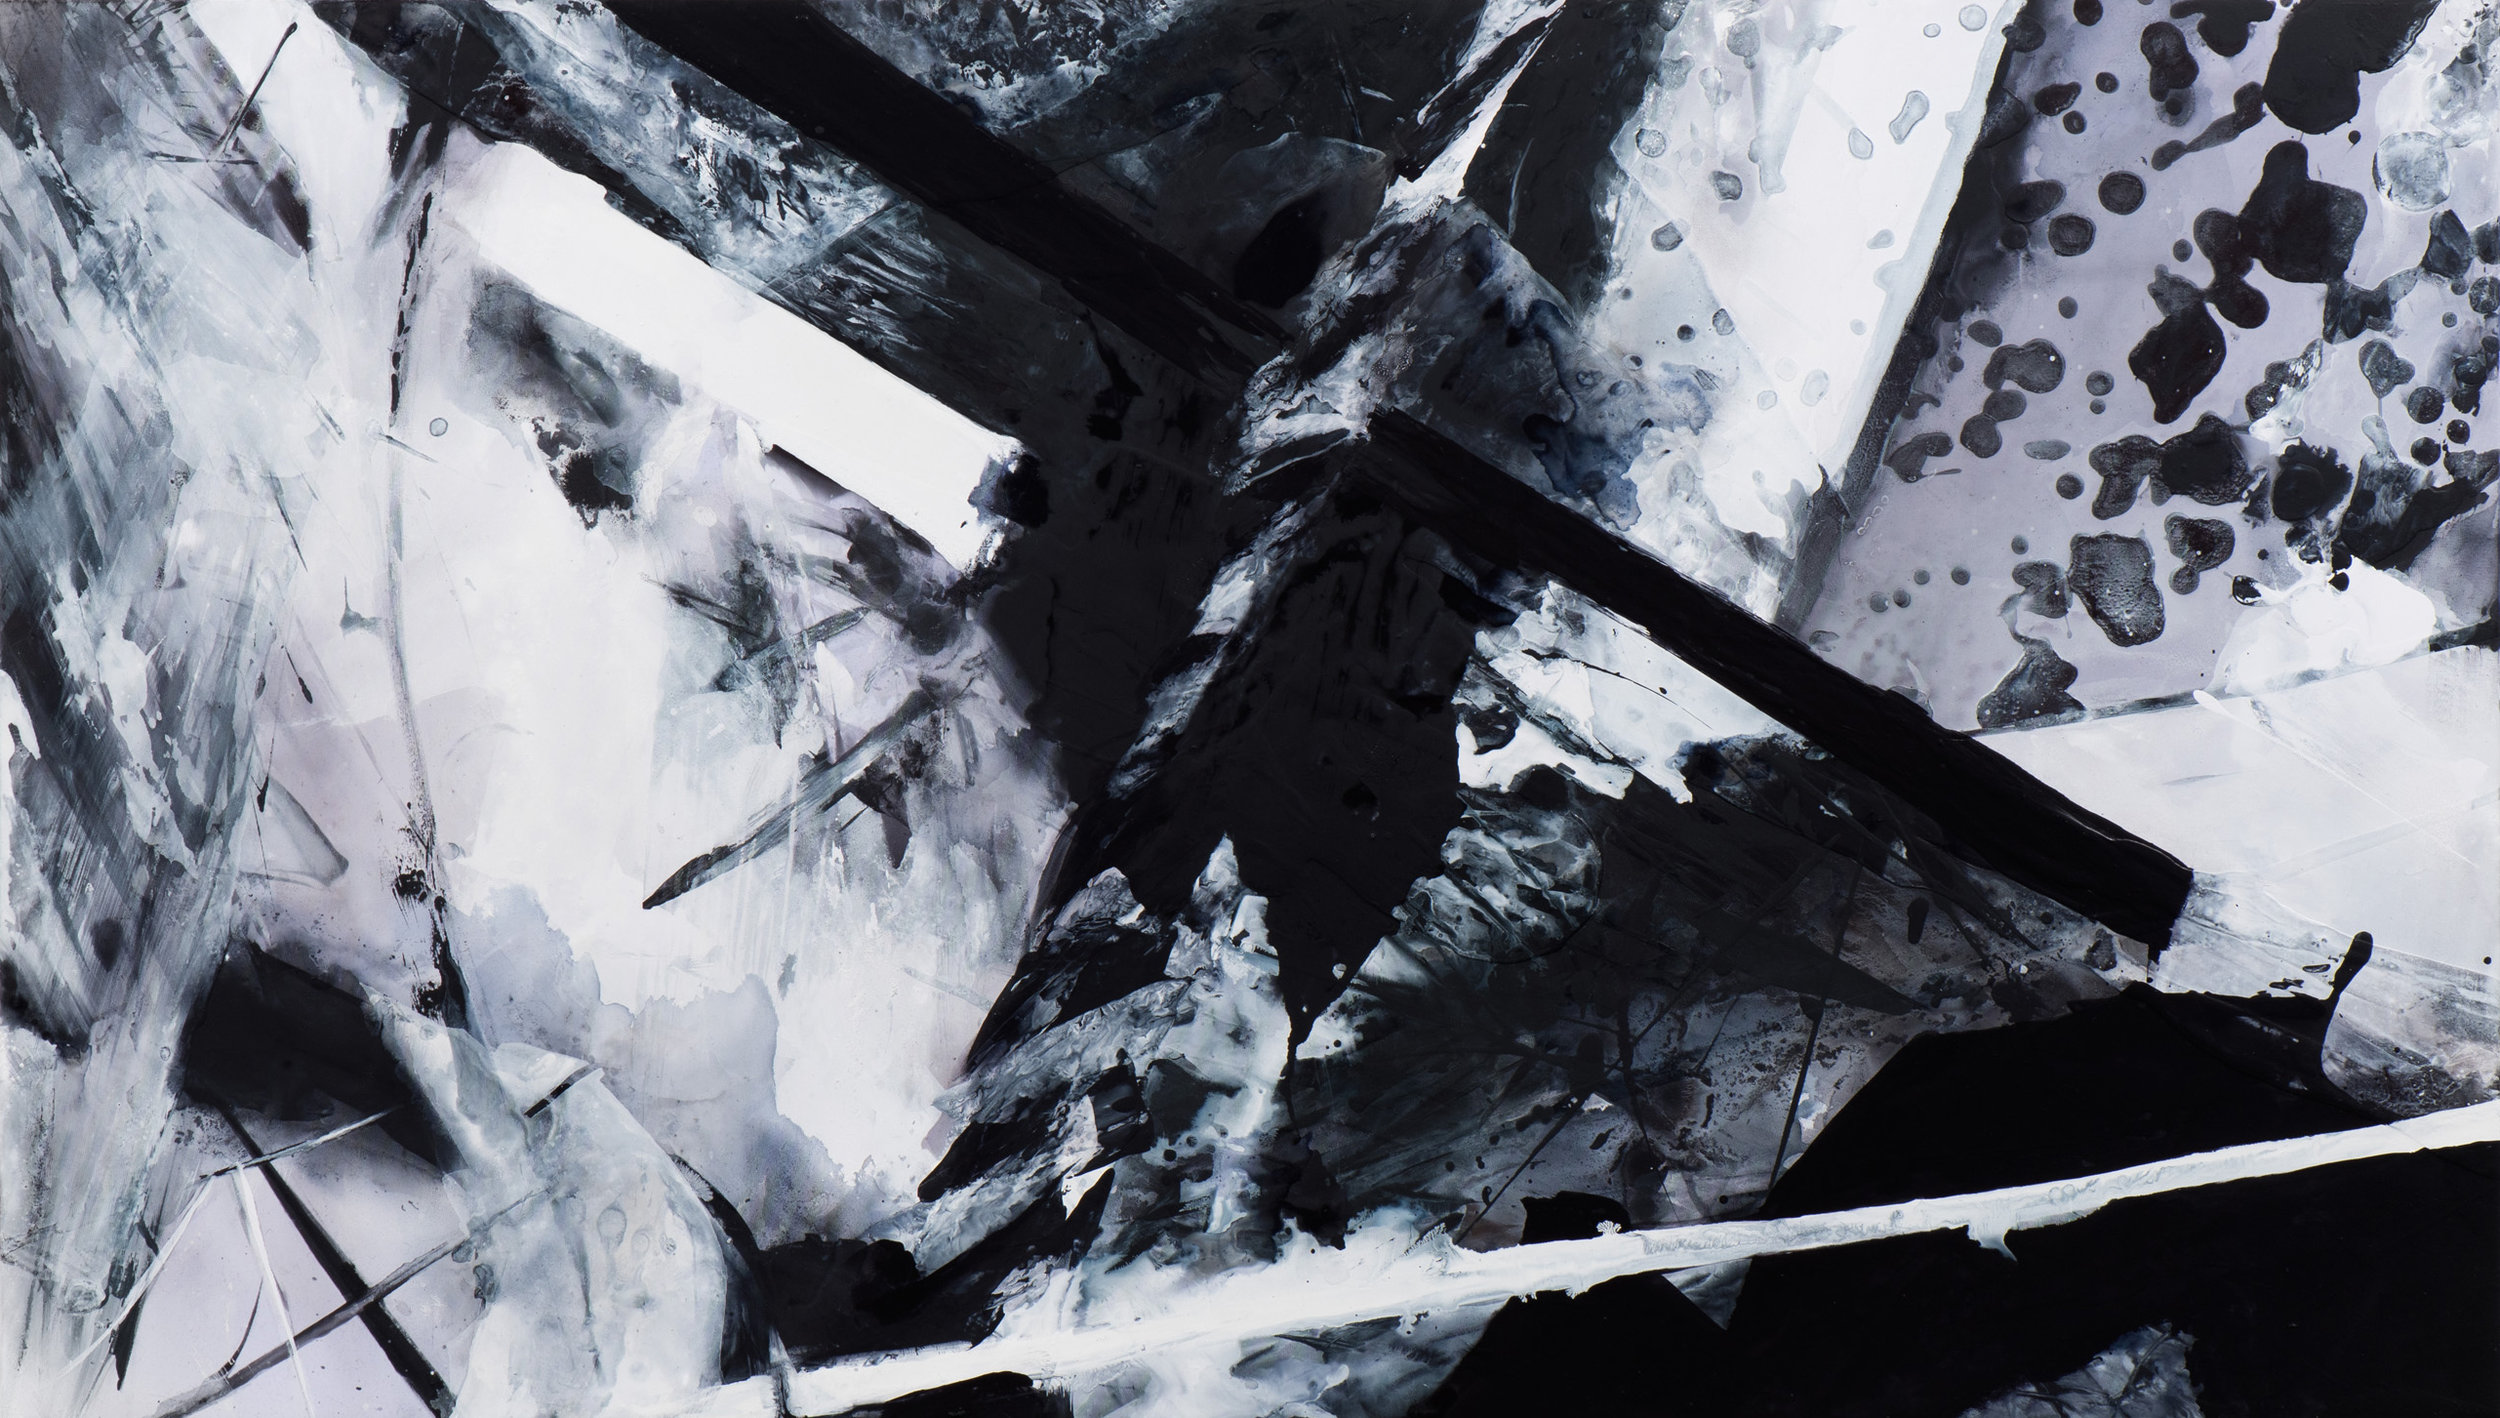 Downfall , 2017 Acrylic on polyester 30 x 51 1/2 inches CLBA-0036 $13,500